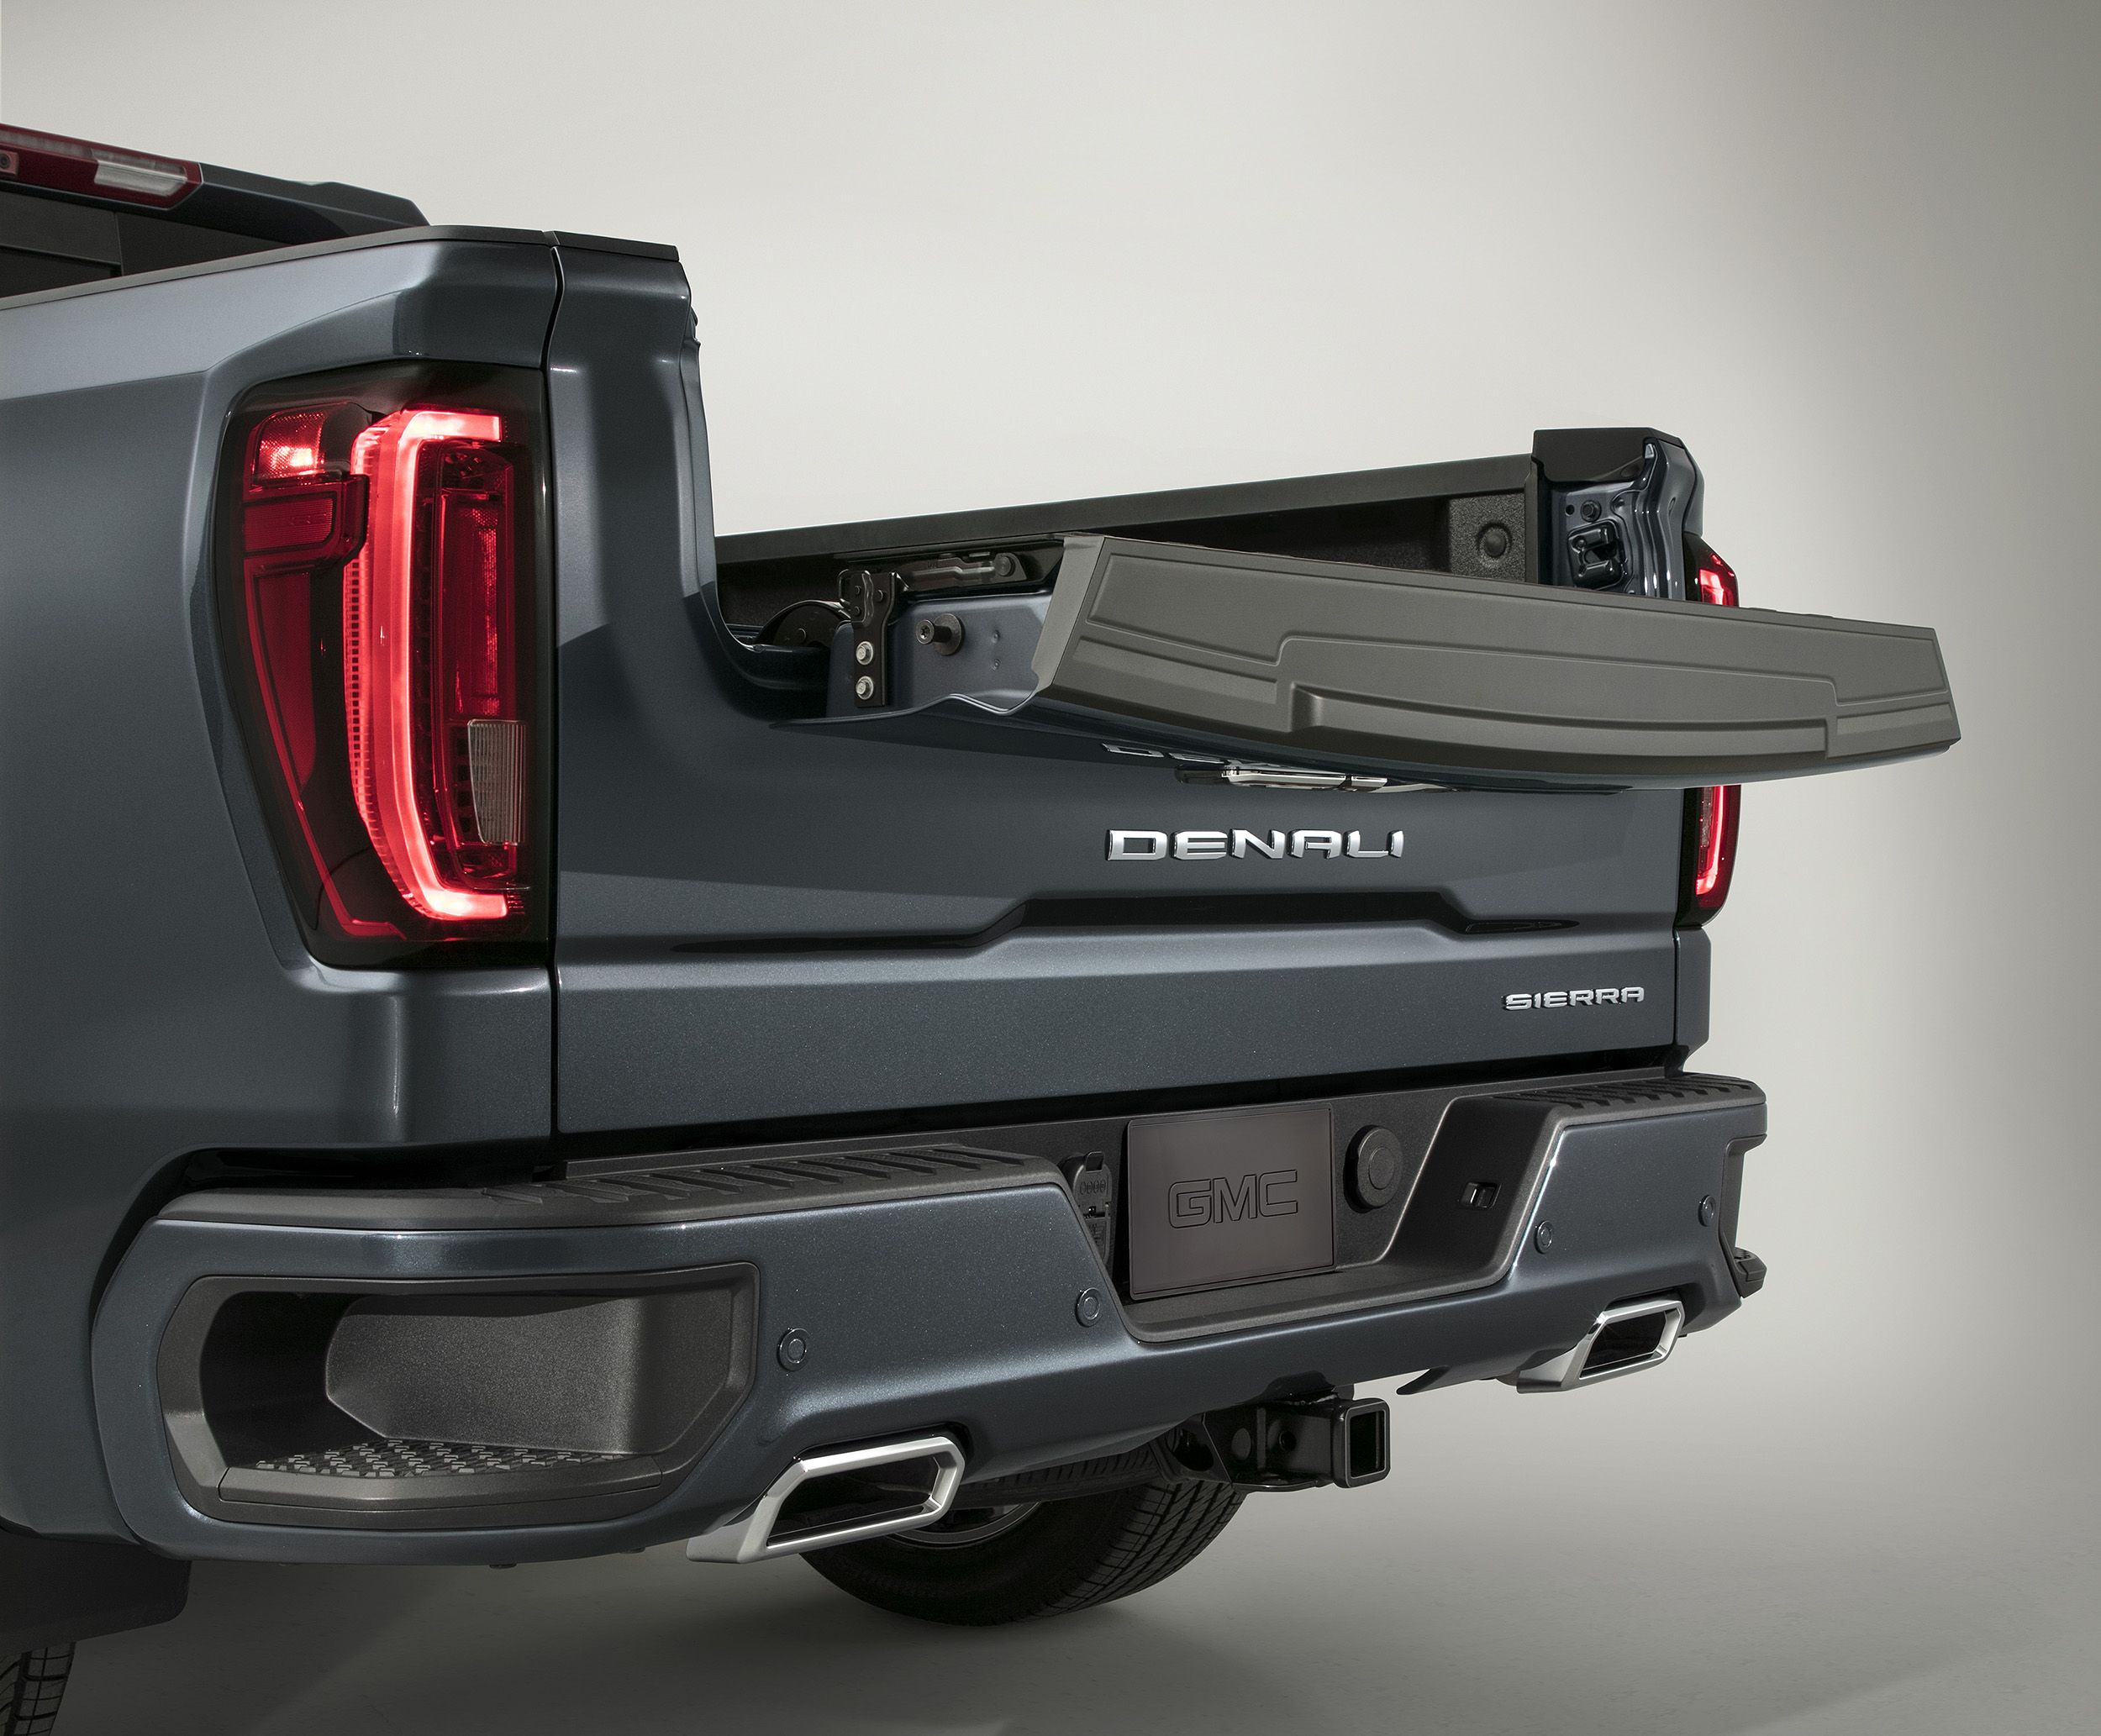 2019 Gmc Sierra 1500 Tailgate Of The Future Gearjunkie Gmc Trucks Gmc Sierra Denali Classic Trucks